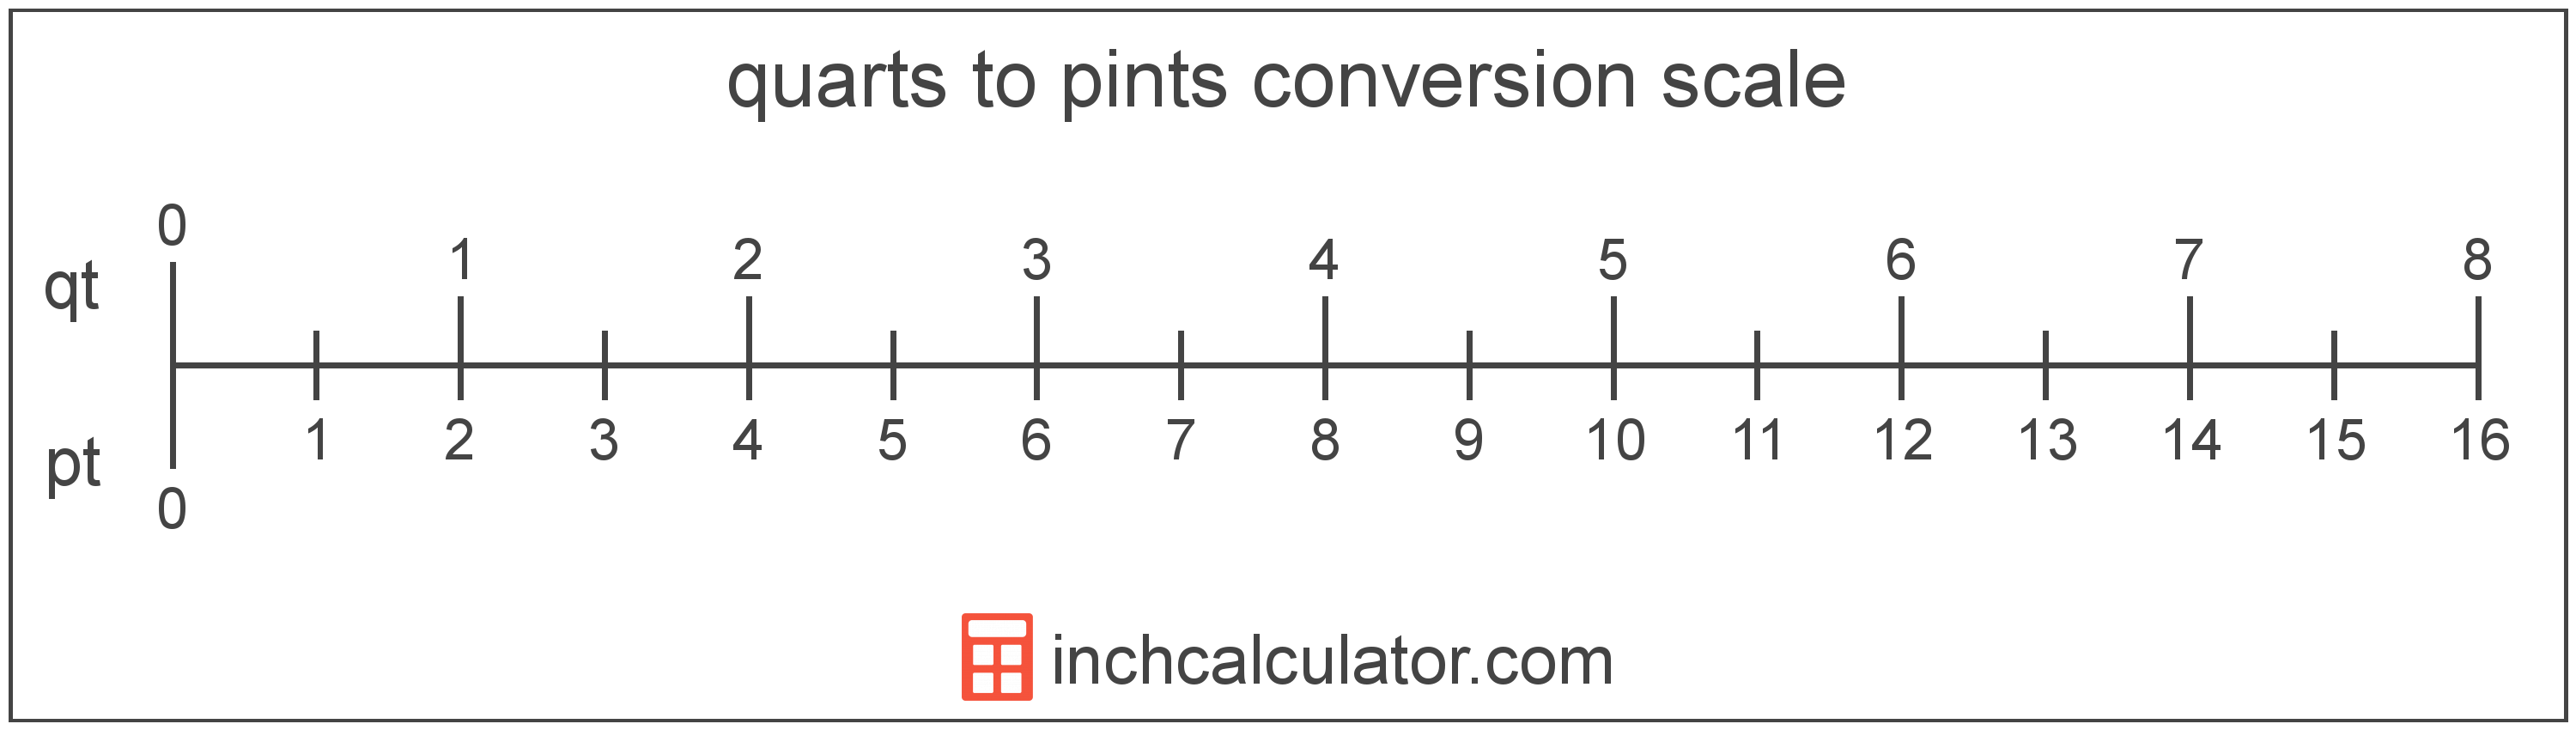 conversion scale showing pints and equivalent quarts volume values